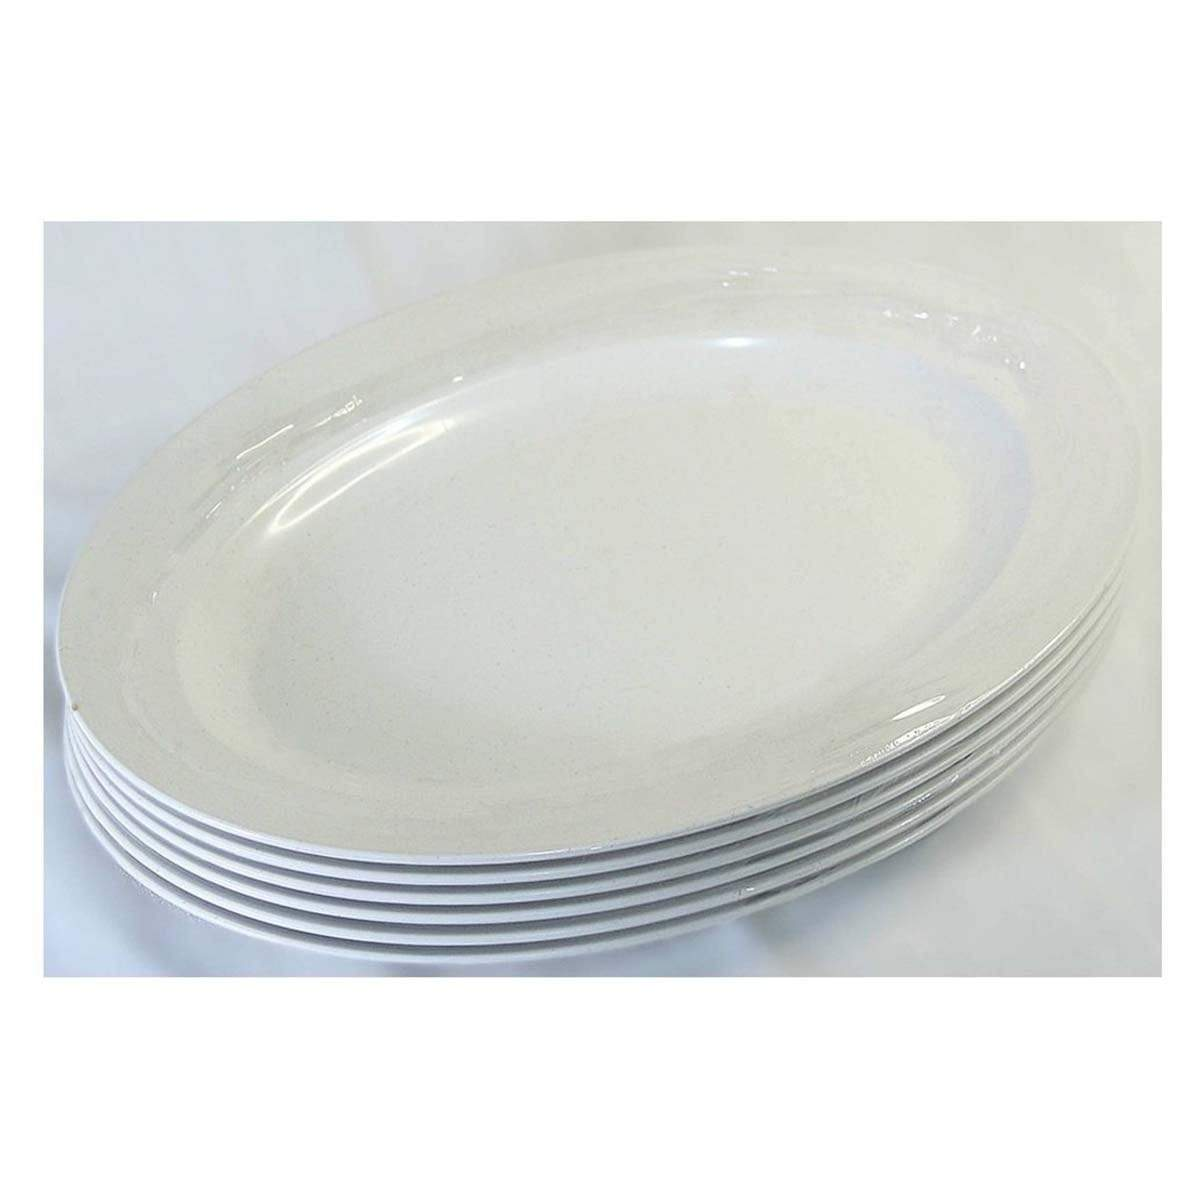 PLT1410 LAVA AS Oval Plate (6pcs) 10 inches